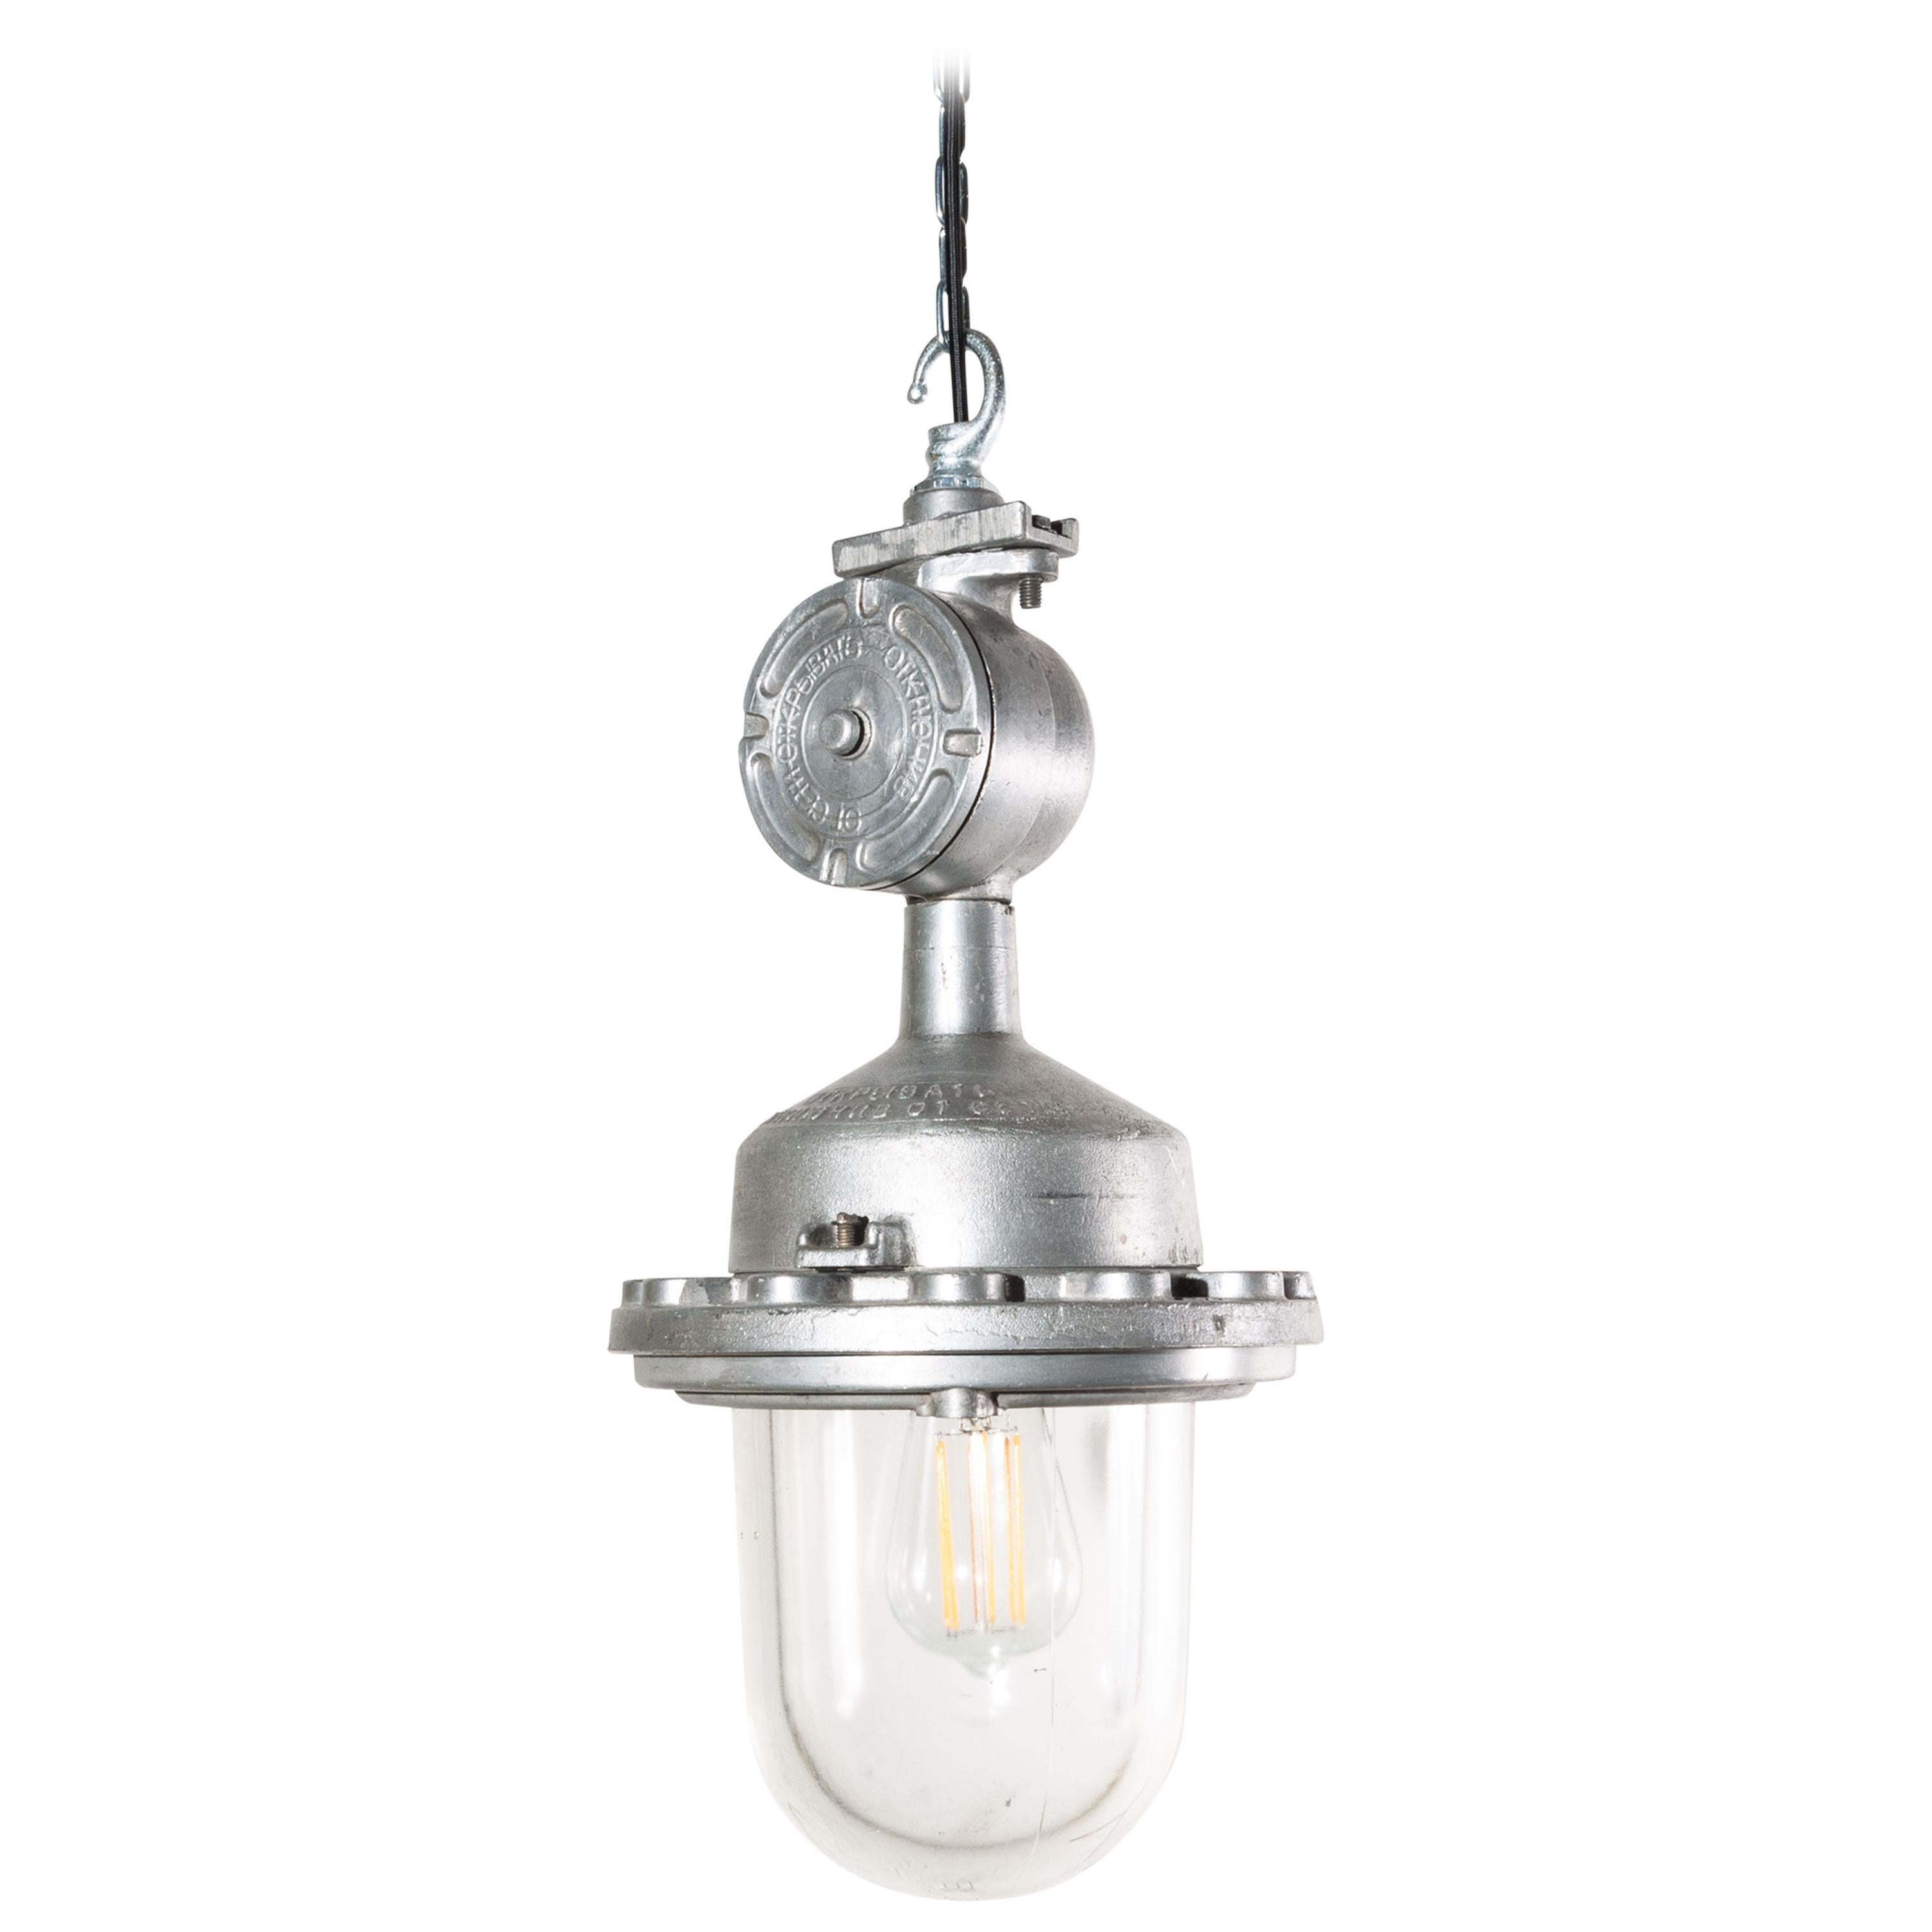 Ceiling Pendant Lights 1960s Industrial Explosion Proof Ceiling Pendant Lamps Lights With Glass Dome